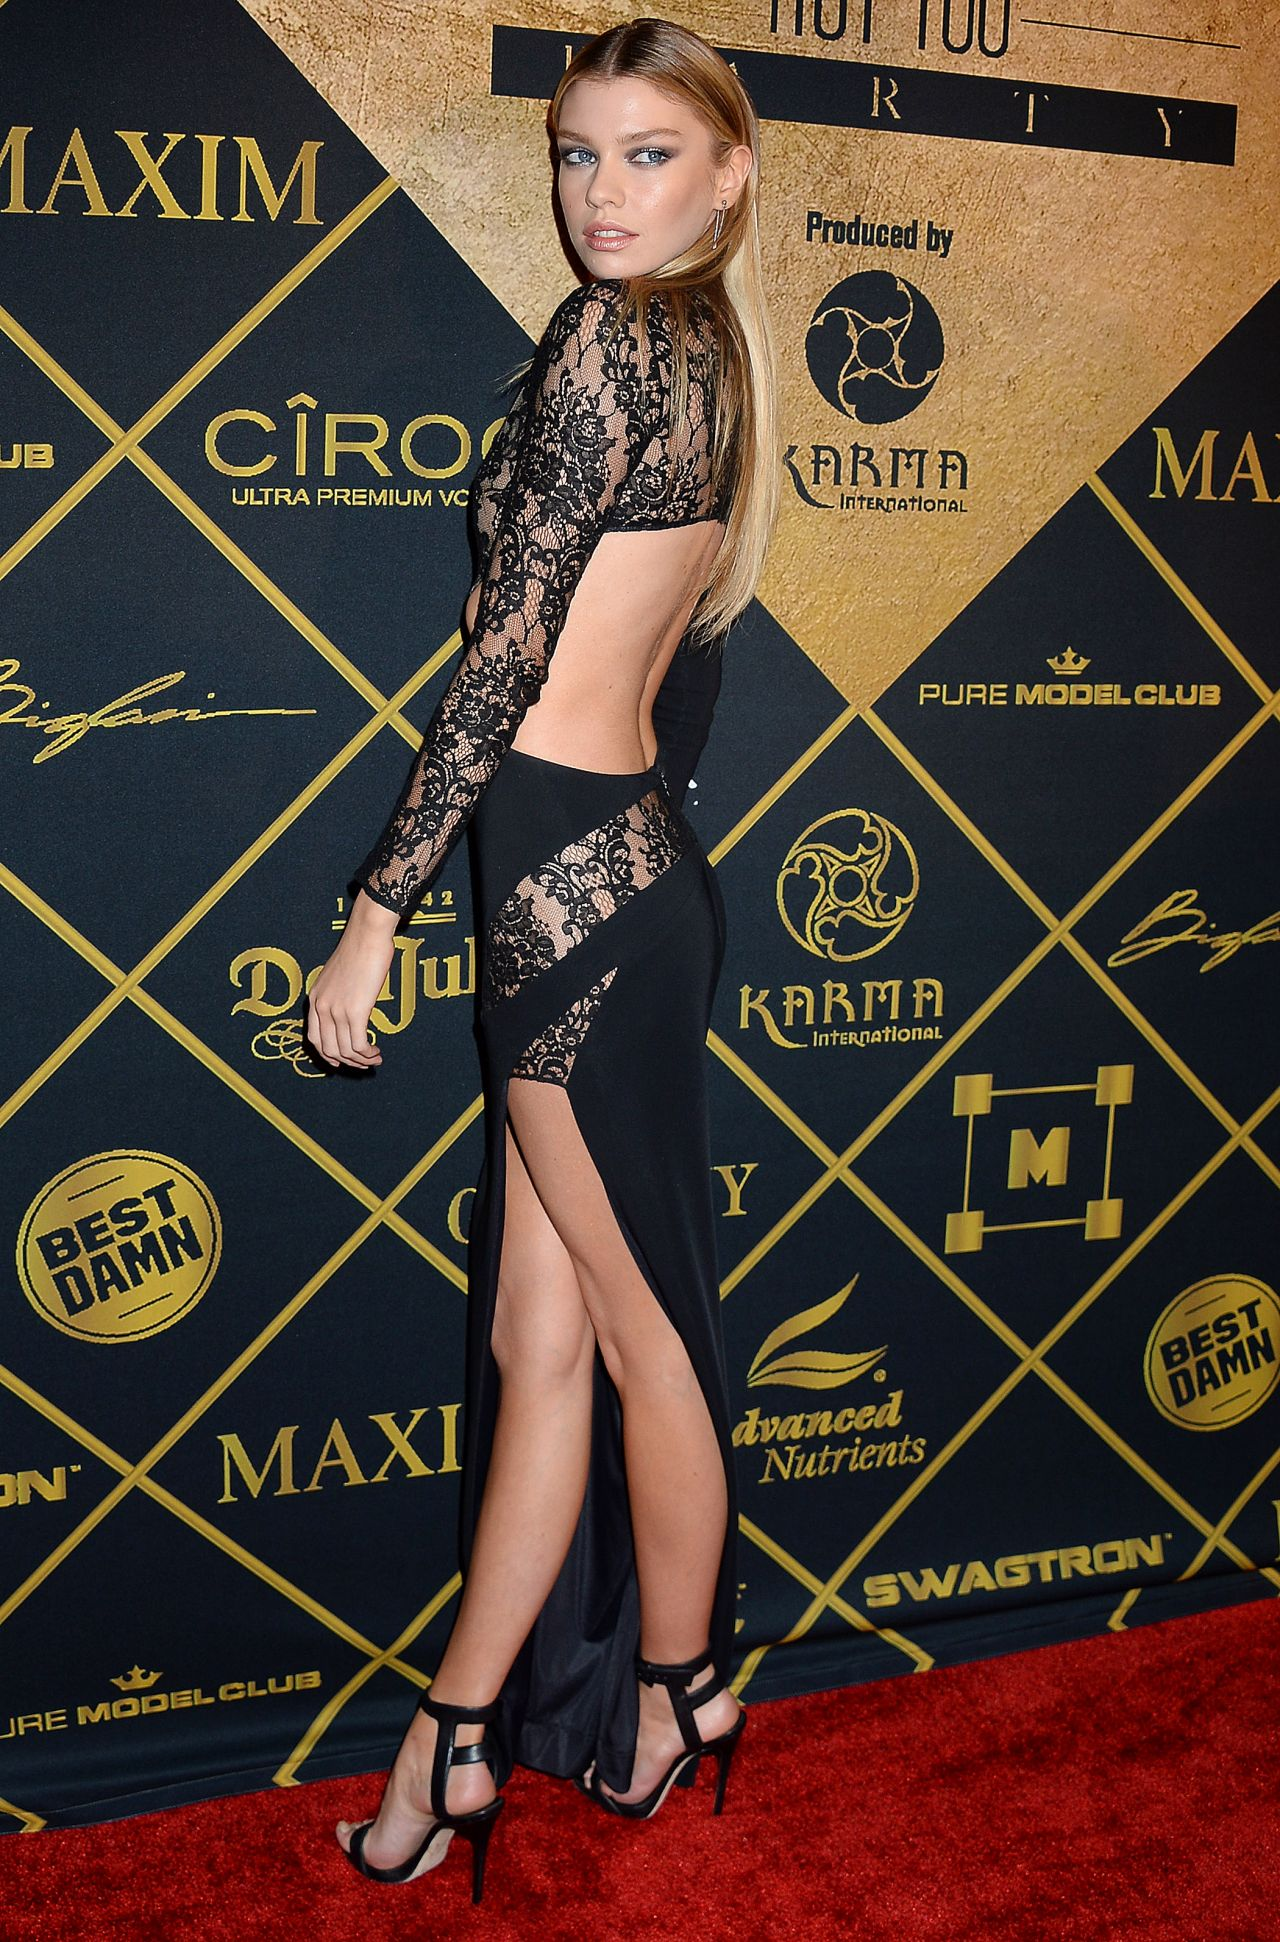 Stella Maxwell tops the 2016 Maxim Hot 100 List. Attend the 2018 Maxim Hot 100 Party hosted by Kate Upton